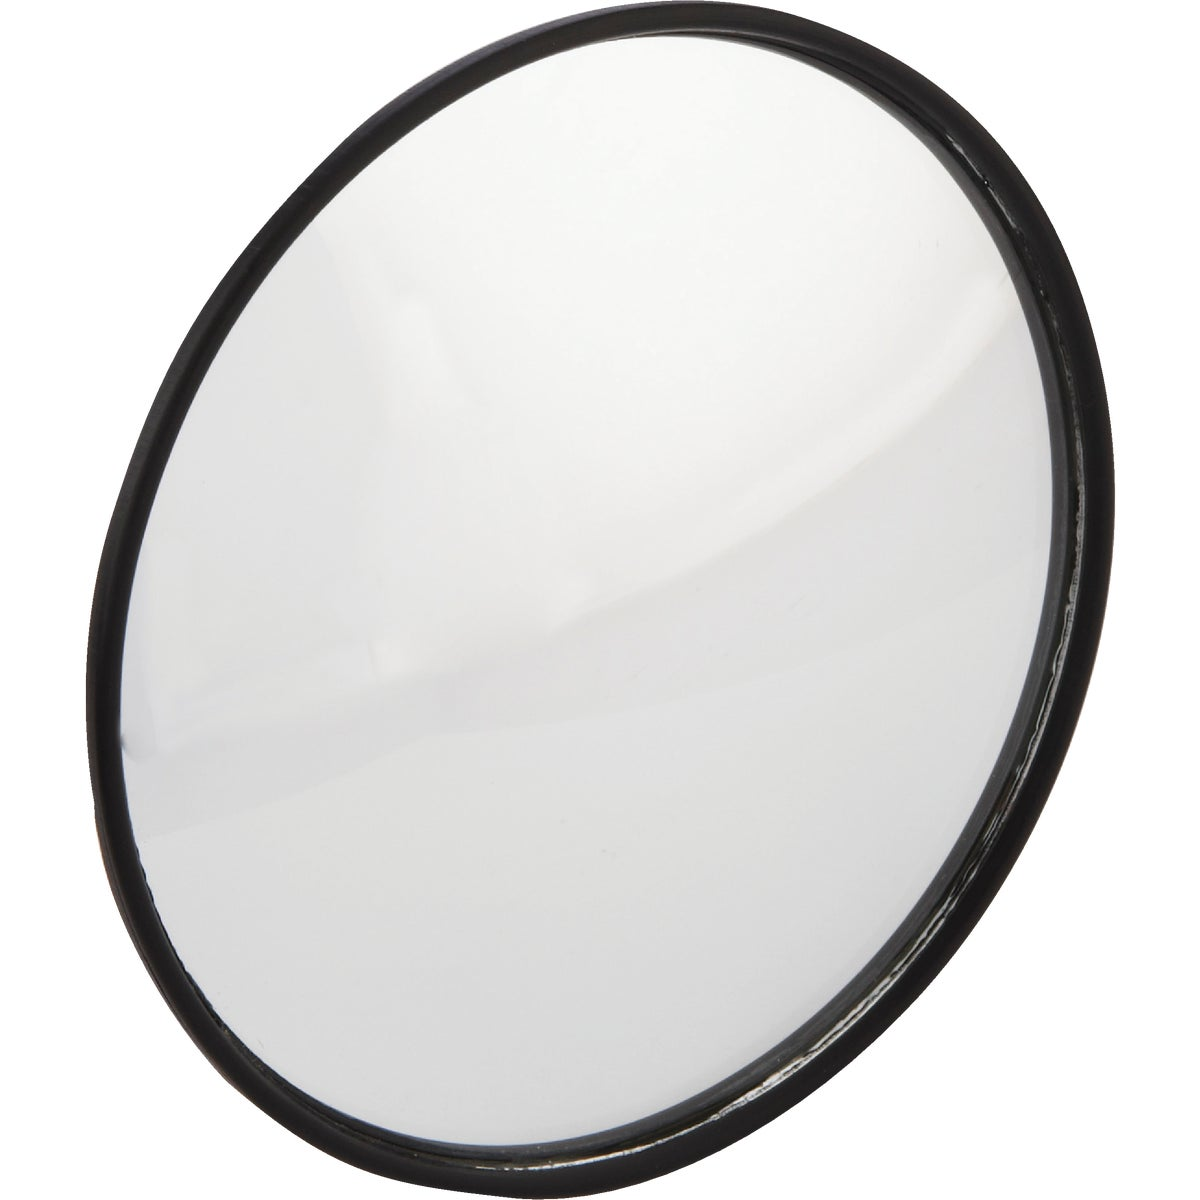 "3-3/4"" SPOT MIRROR - 71112 by Custom Accessories"